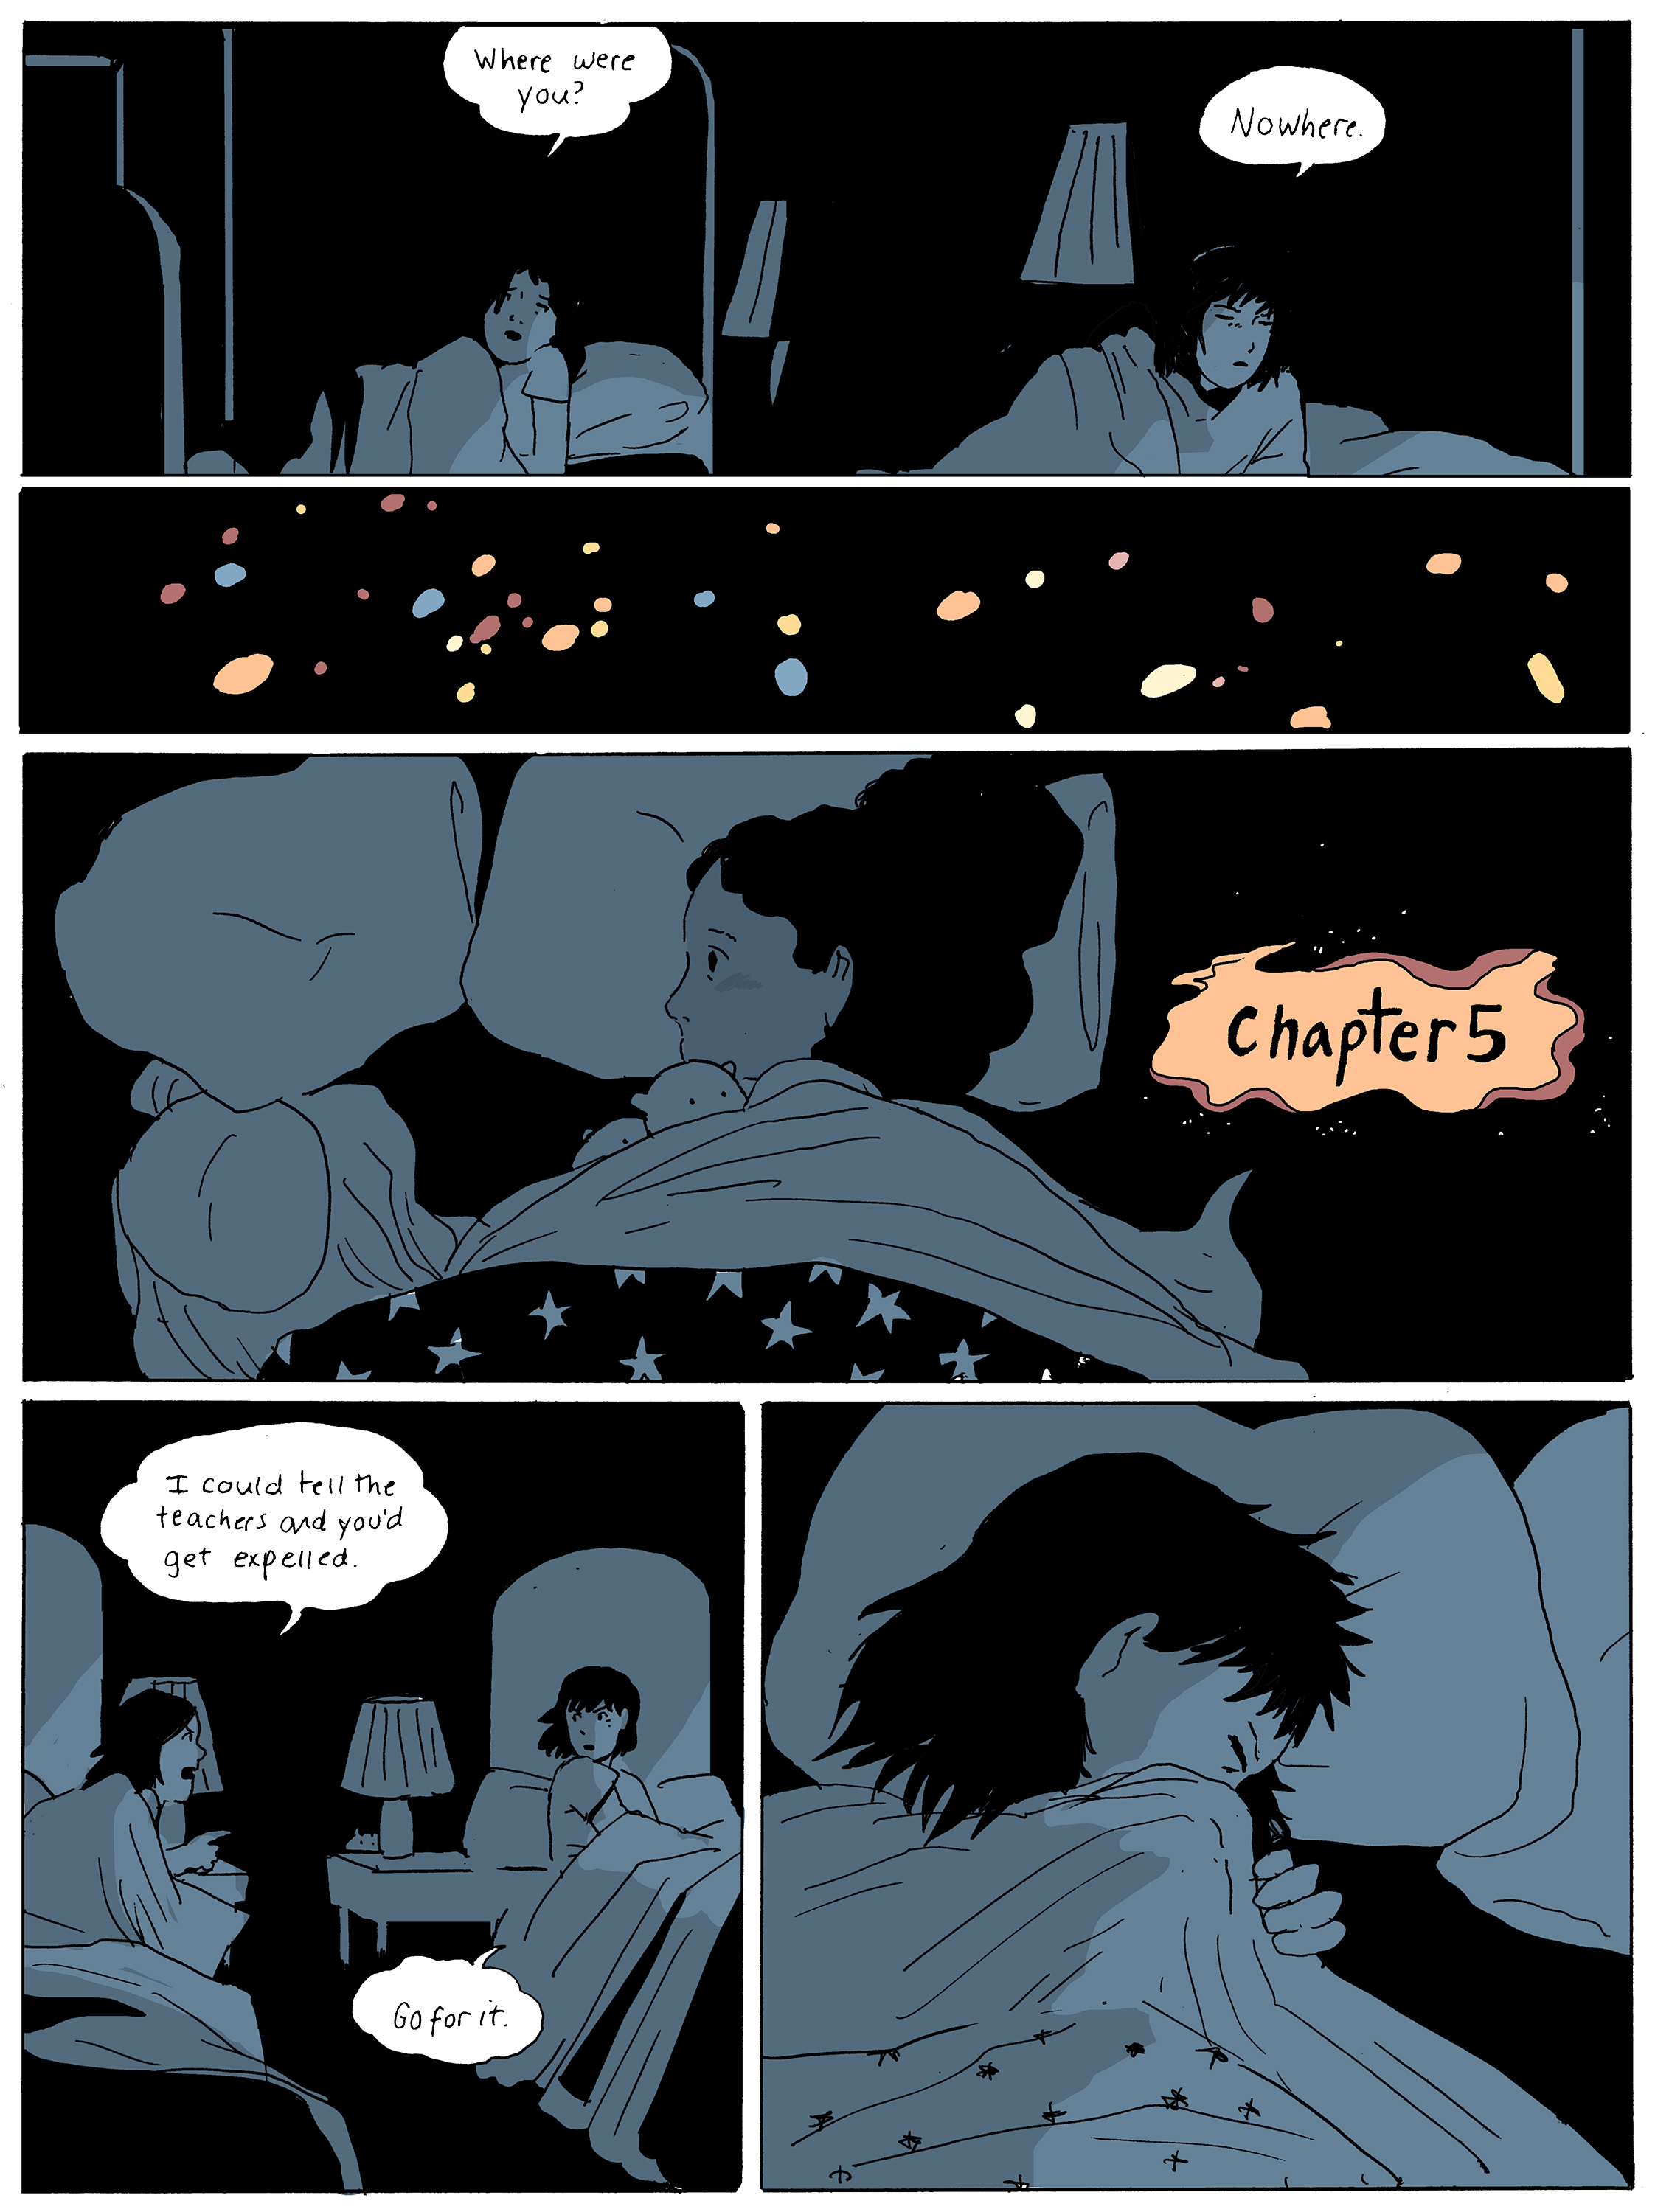 chapter05_page01.jpg